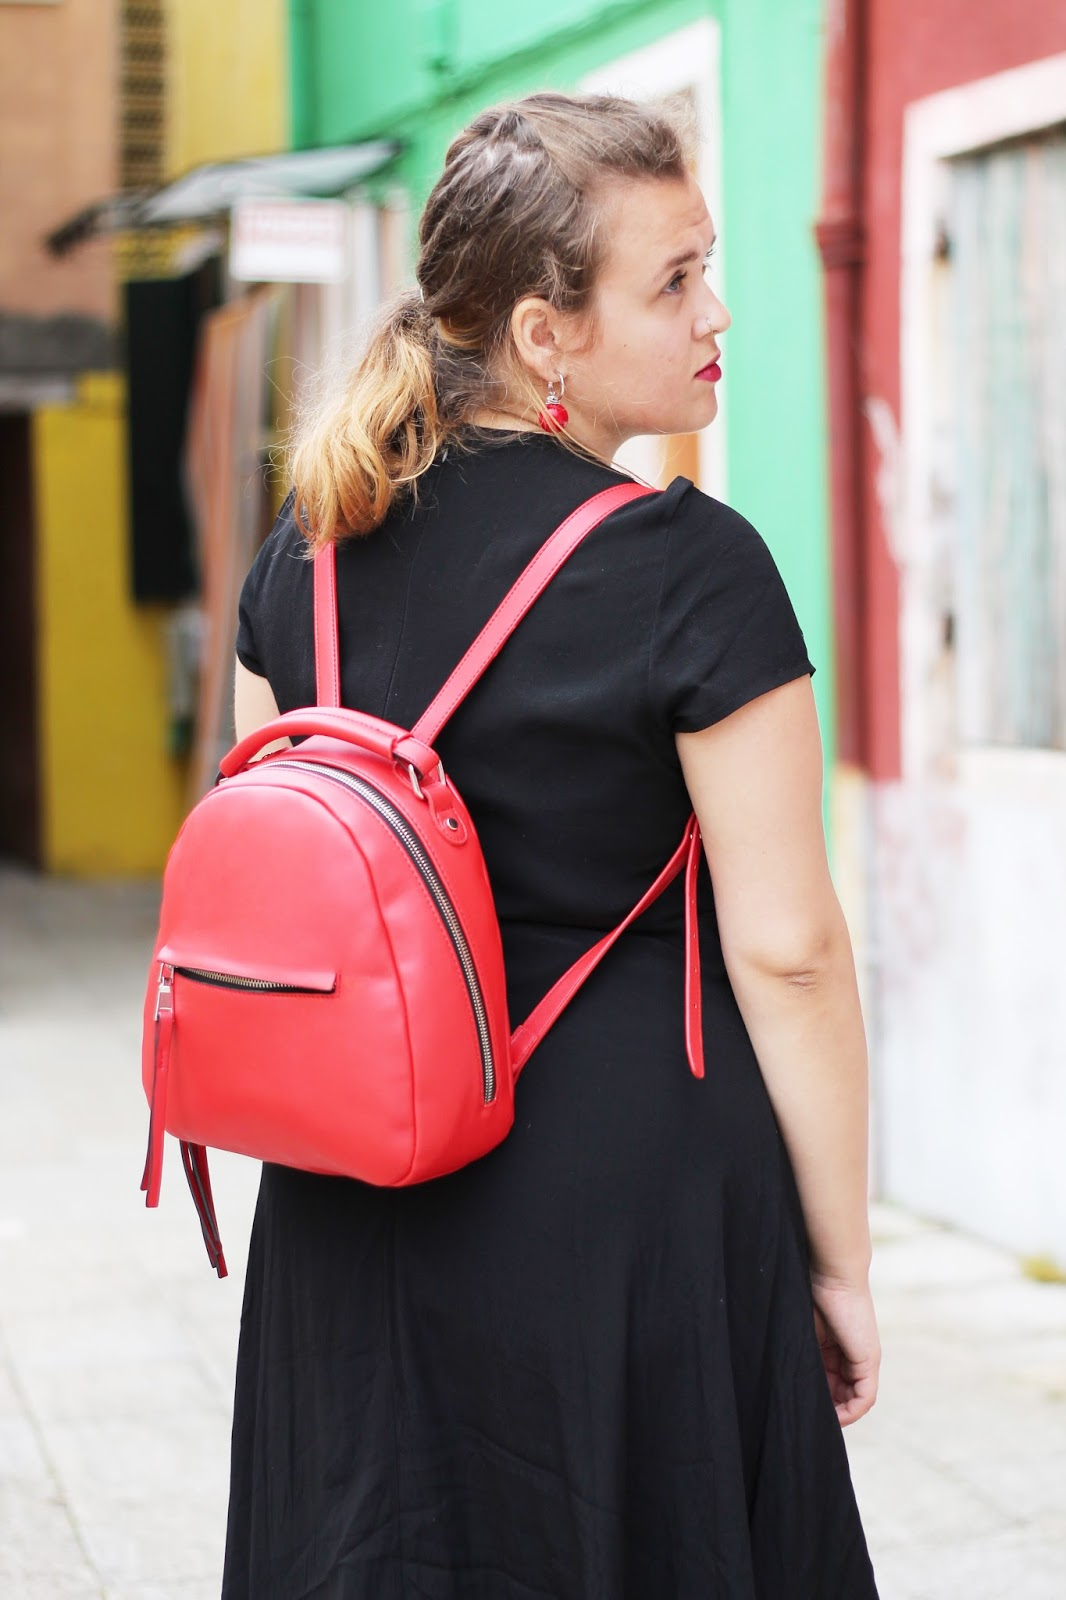 This Zara backpack is perfect for exploring as a tourist | fashamorphosis.blogspot.com